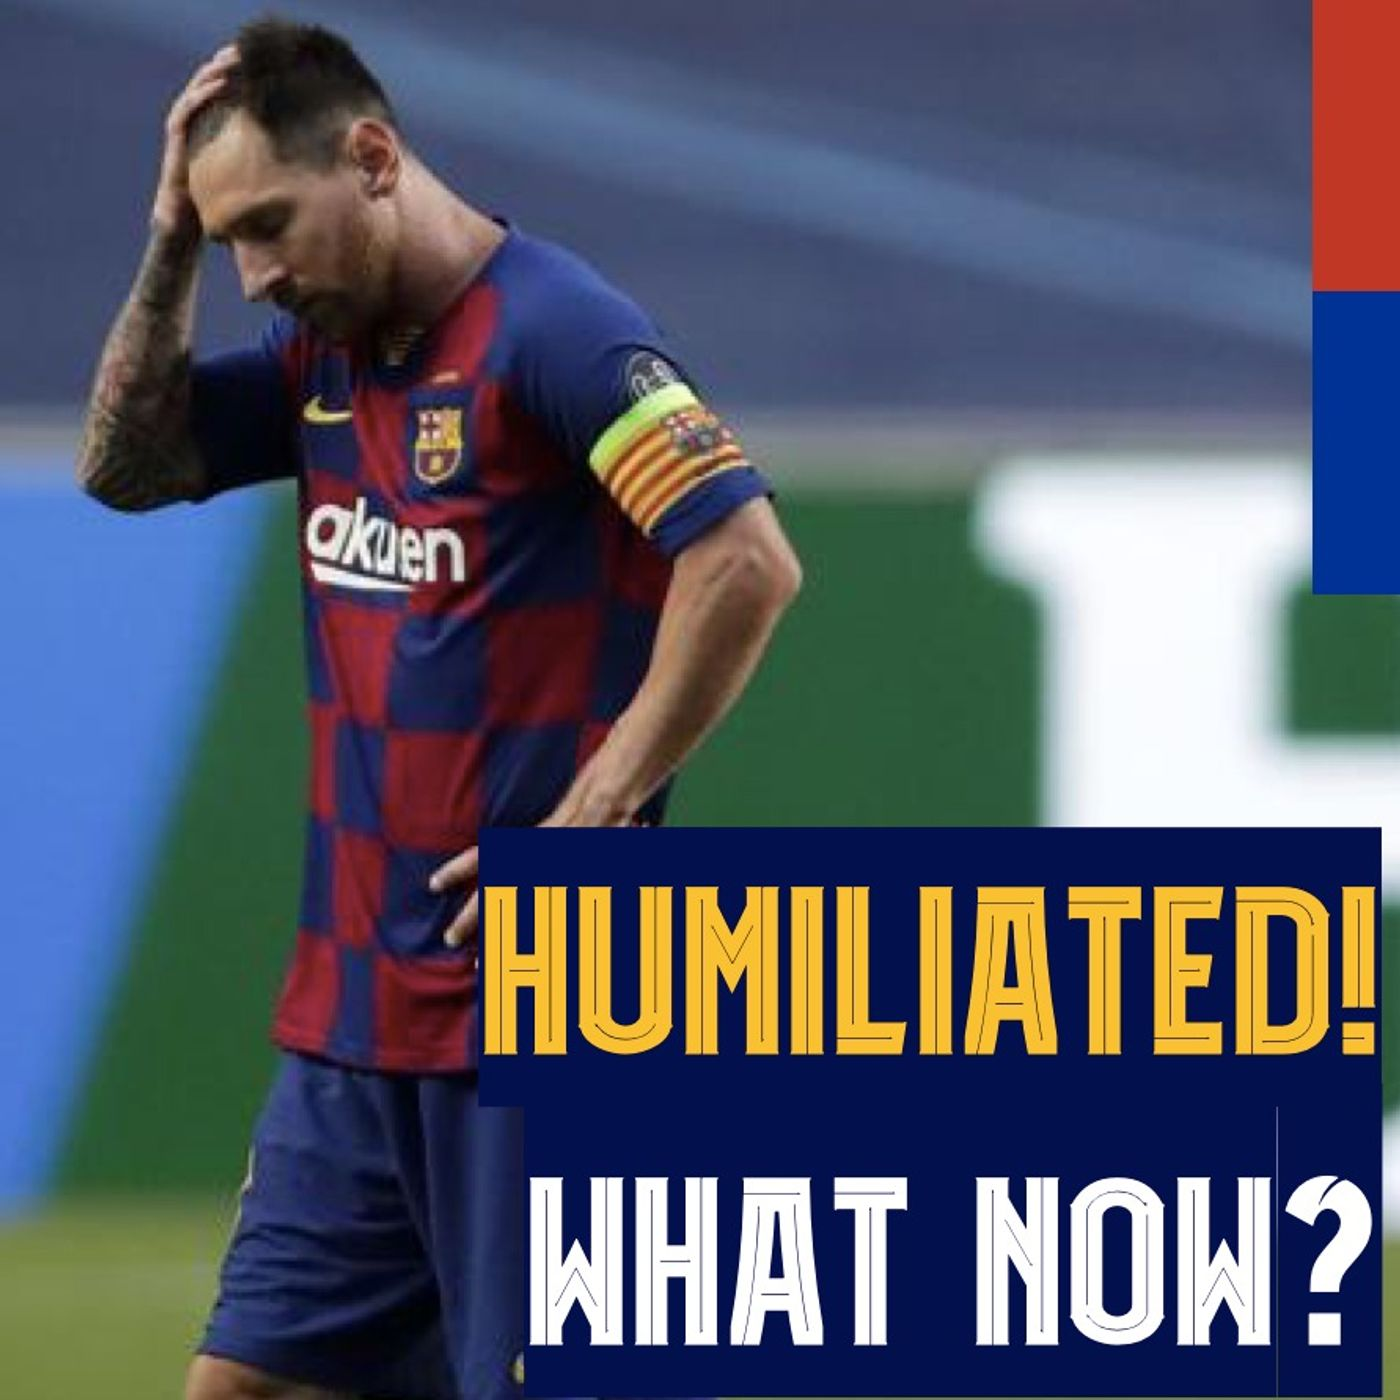 Barcelona HUMILIATED 2-8 vs. Bayern: What's next for Bartomeu, Abidal, Setién, Messi, and veteran players?